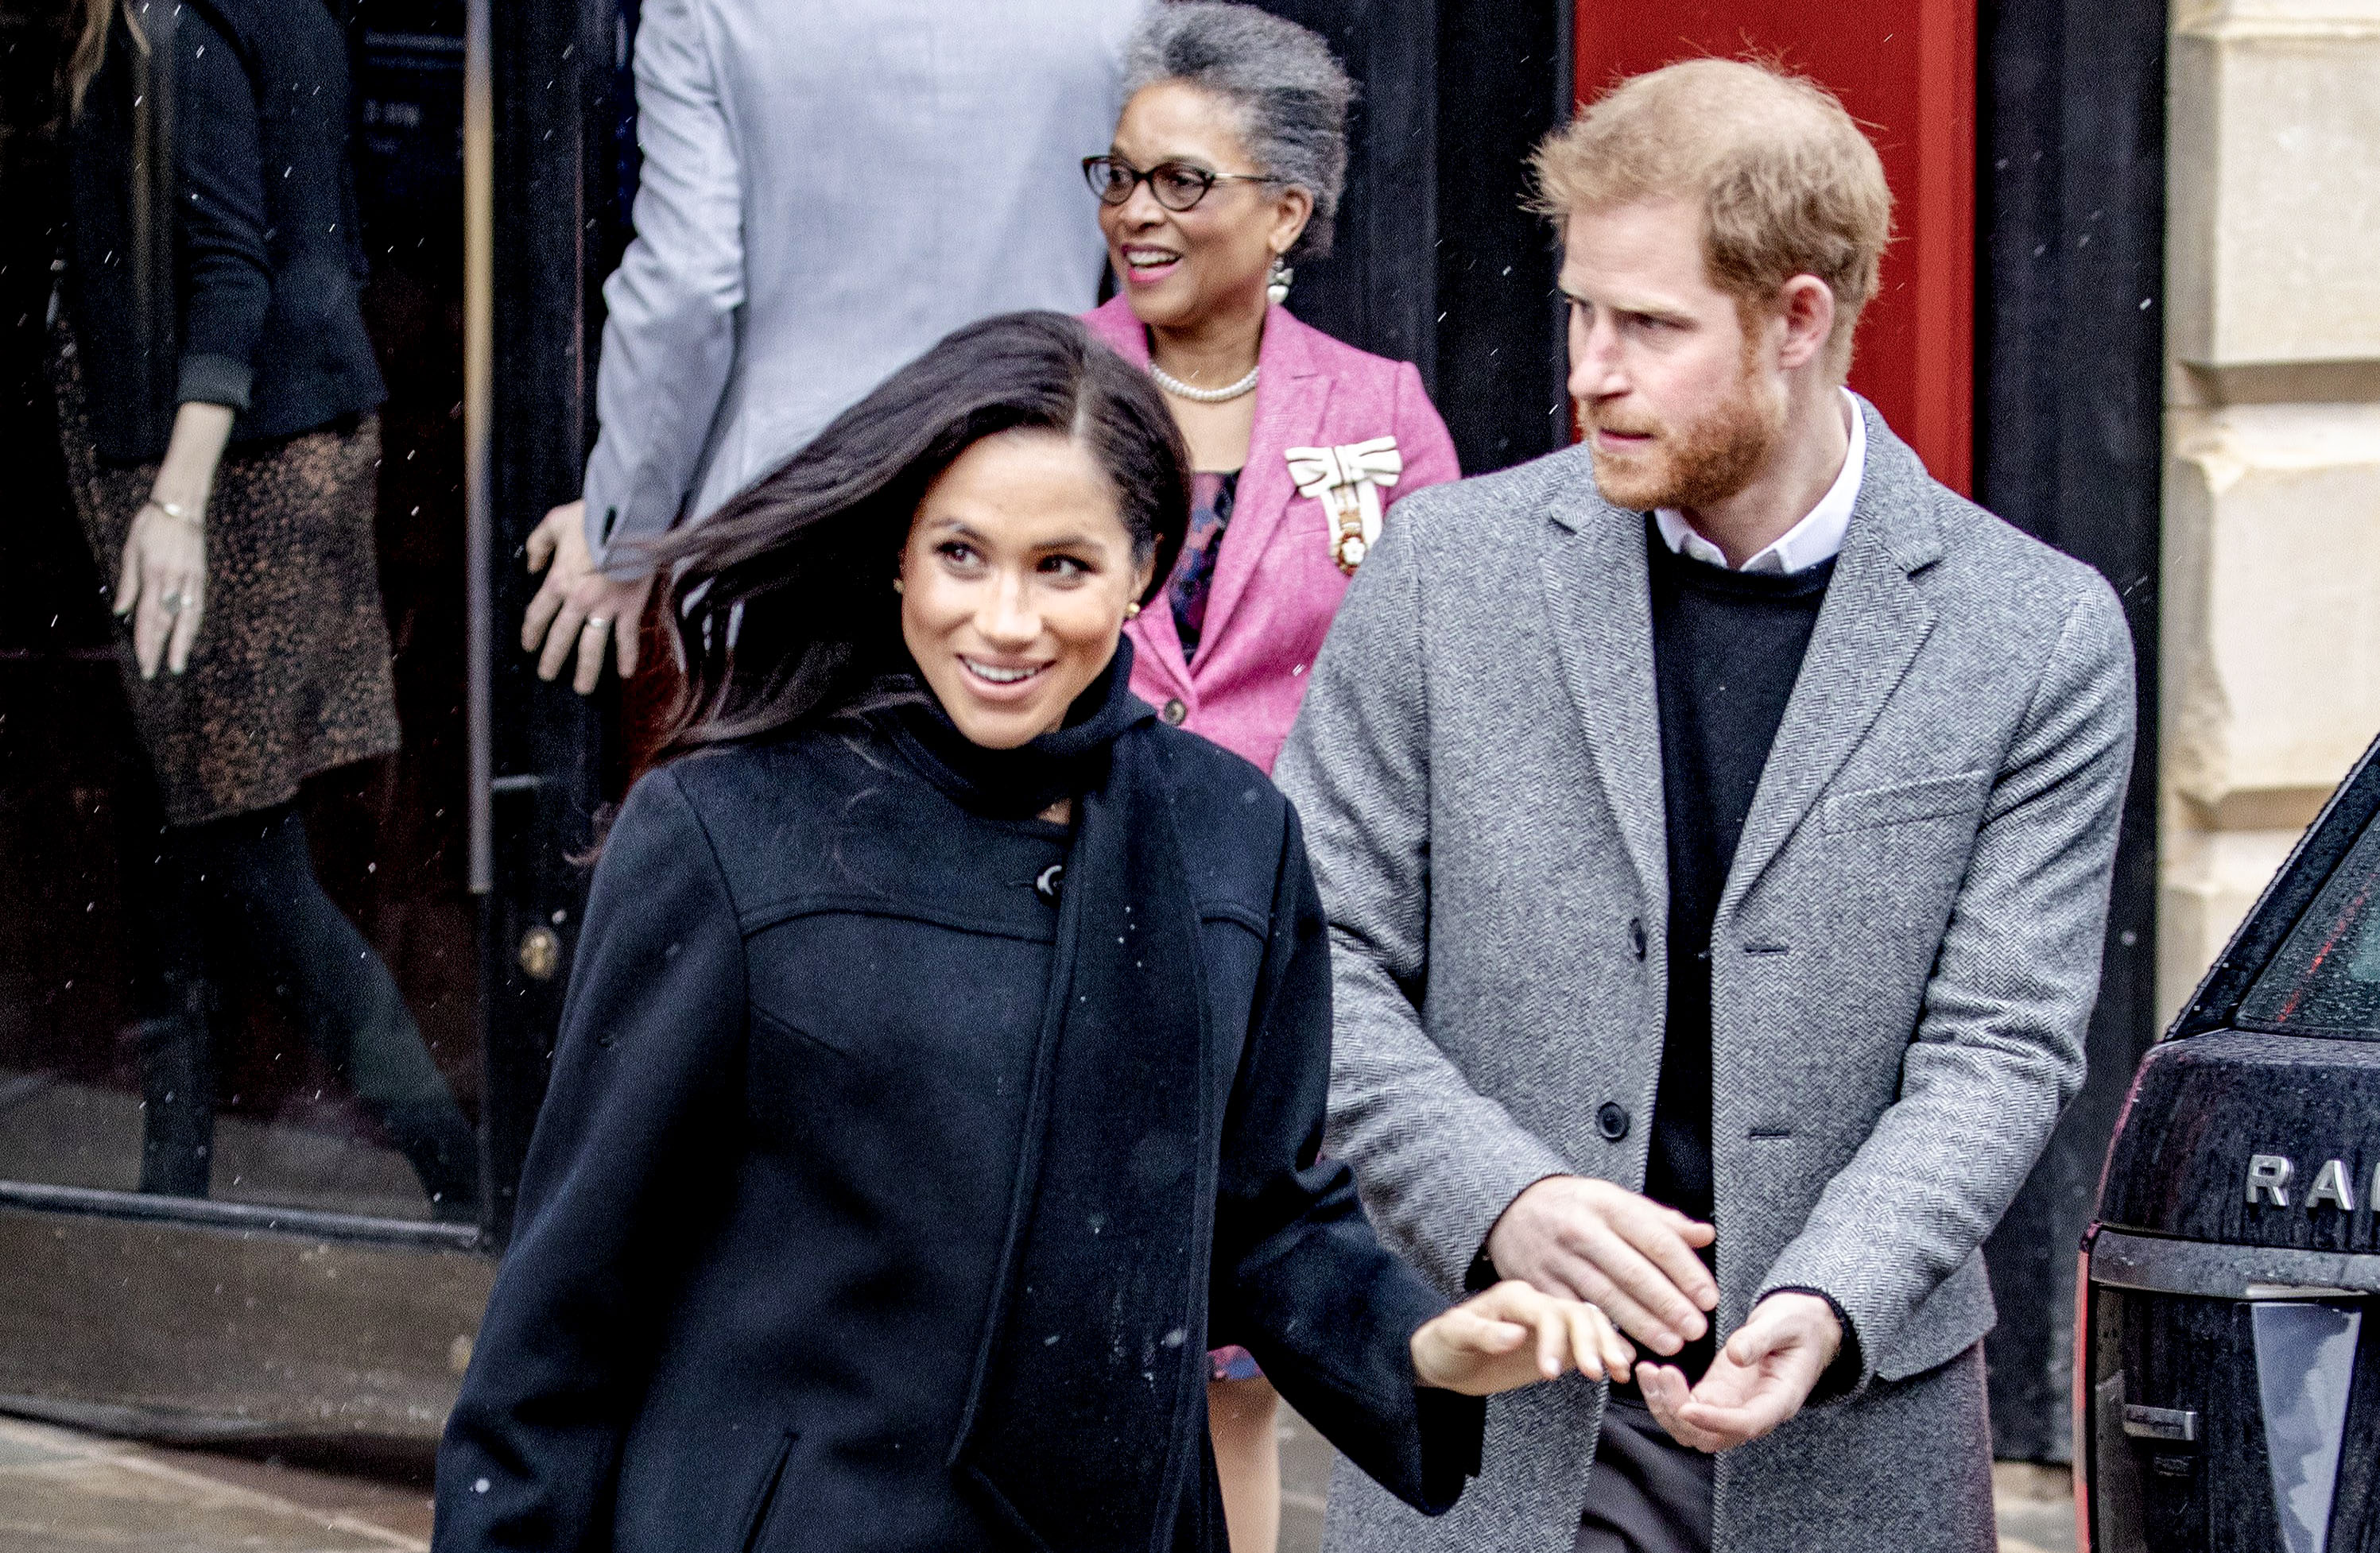 Meghan Markle's baby has a surprising nickname!